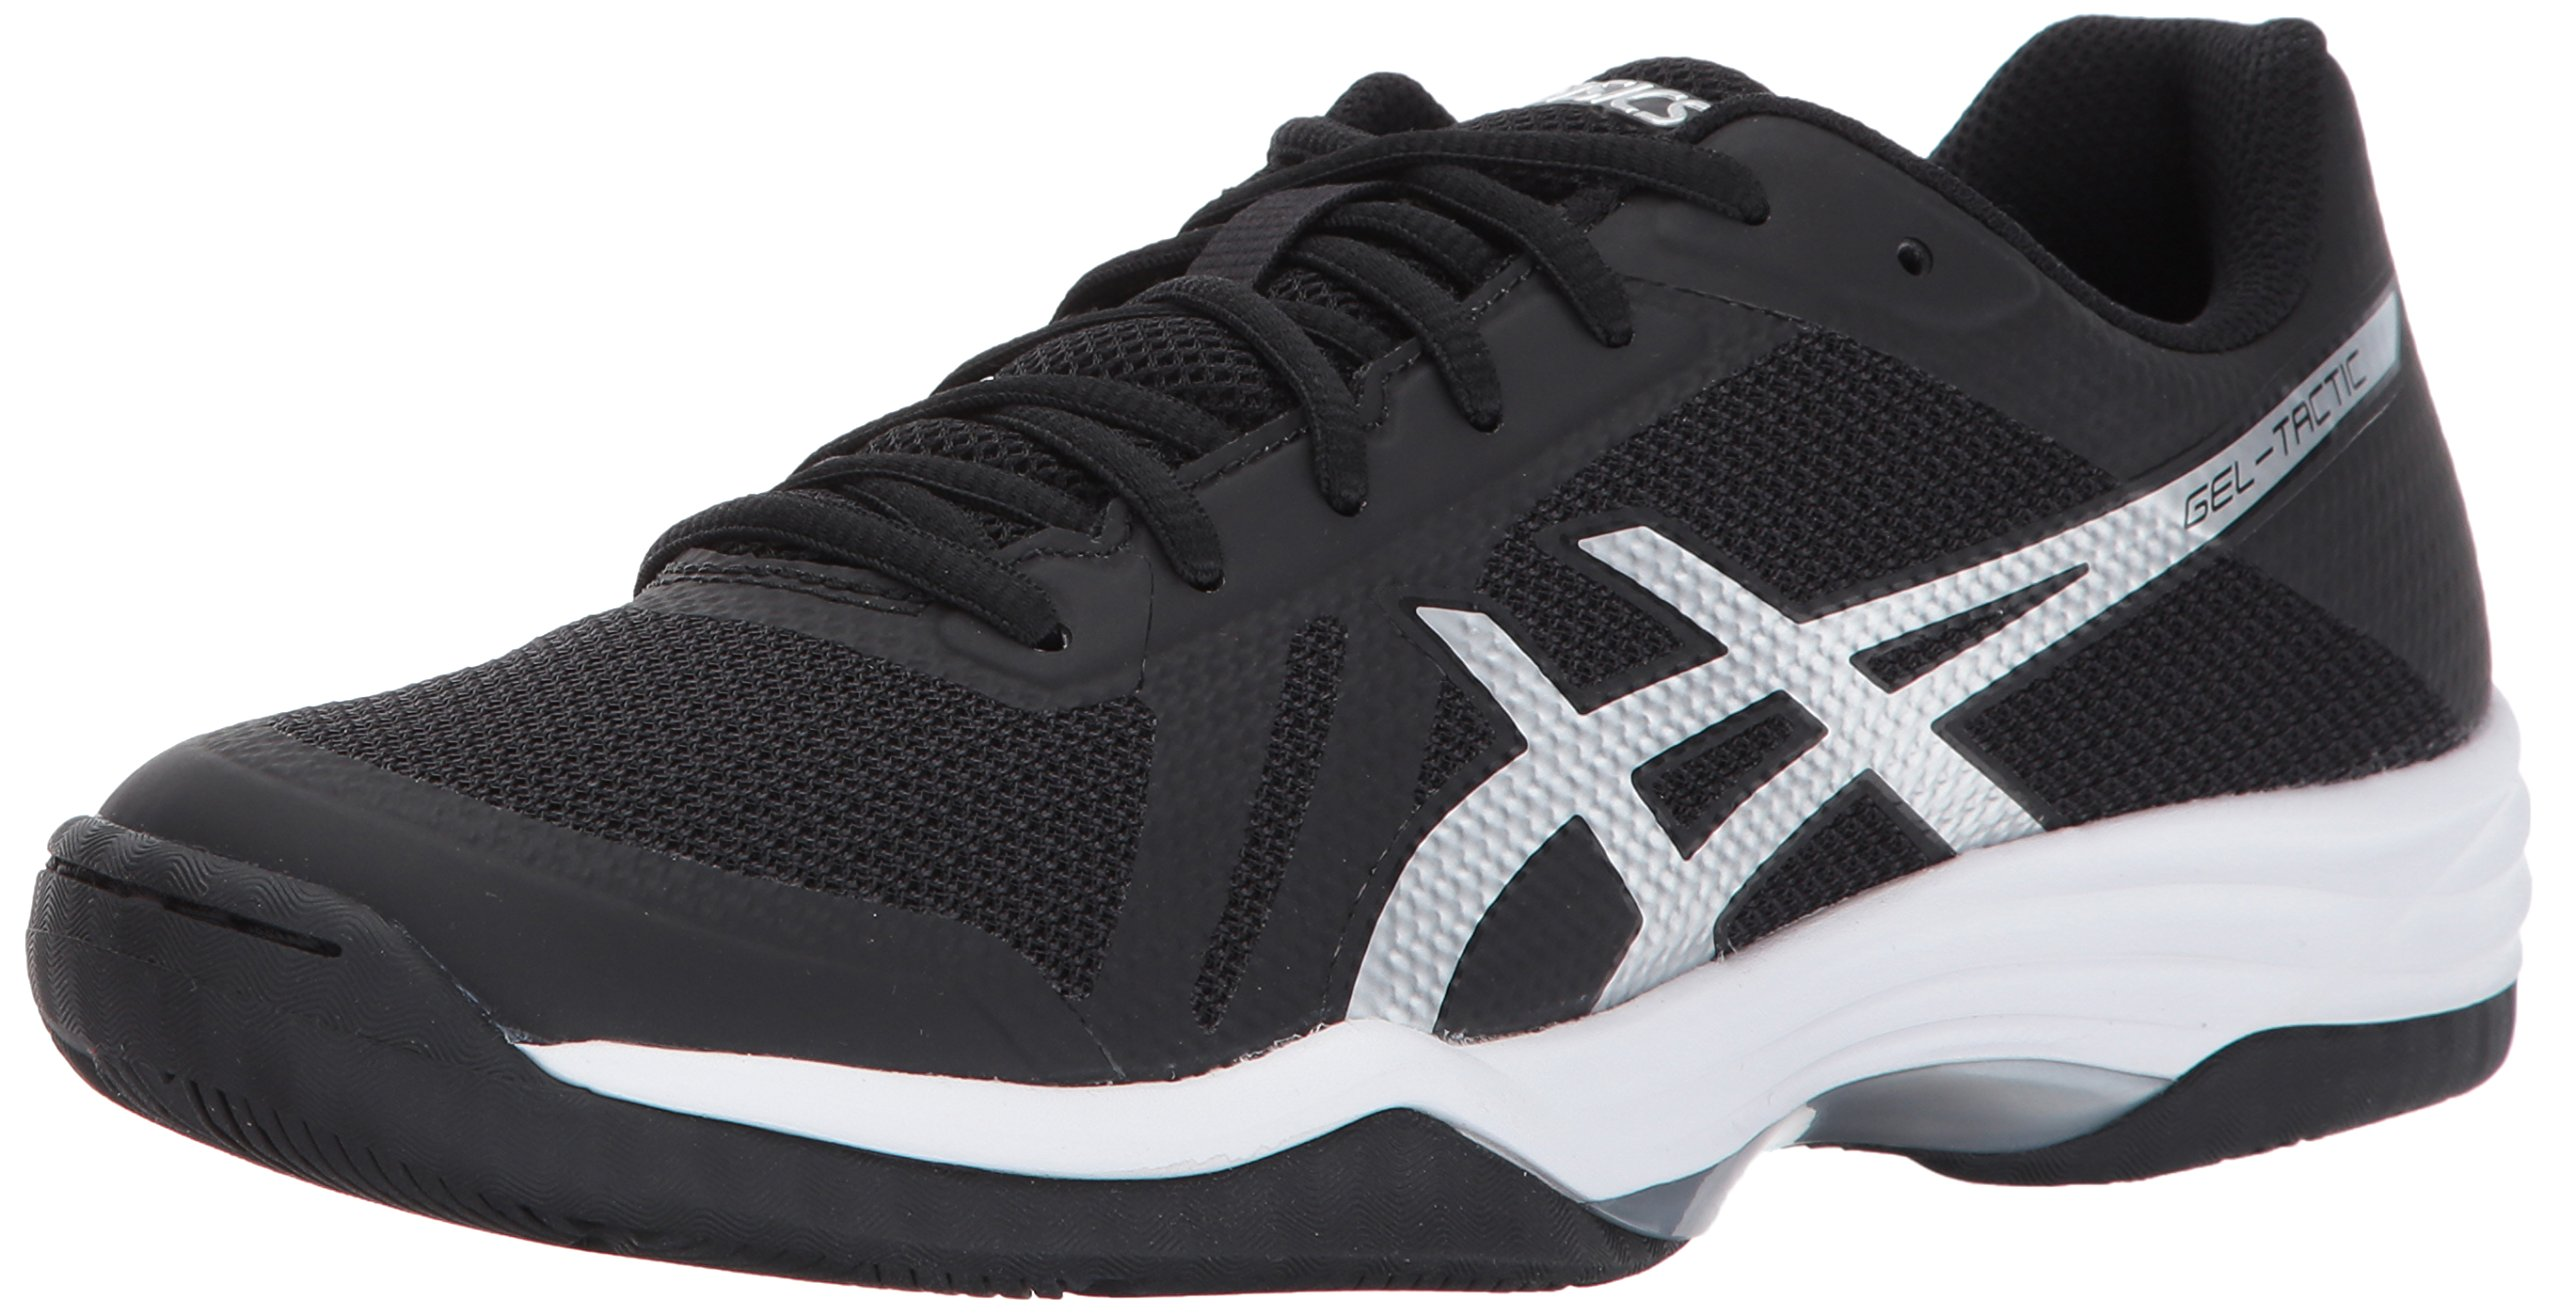 ASICS Womens Gel-Tactic 2 Volleyball Shoe, Black/Silver/White, 10 Medium US by ASICS